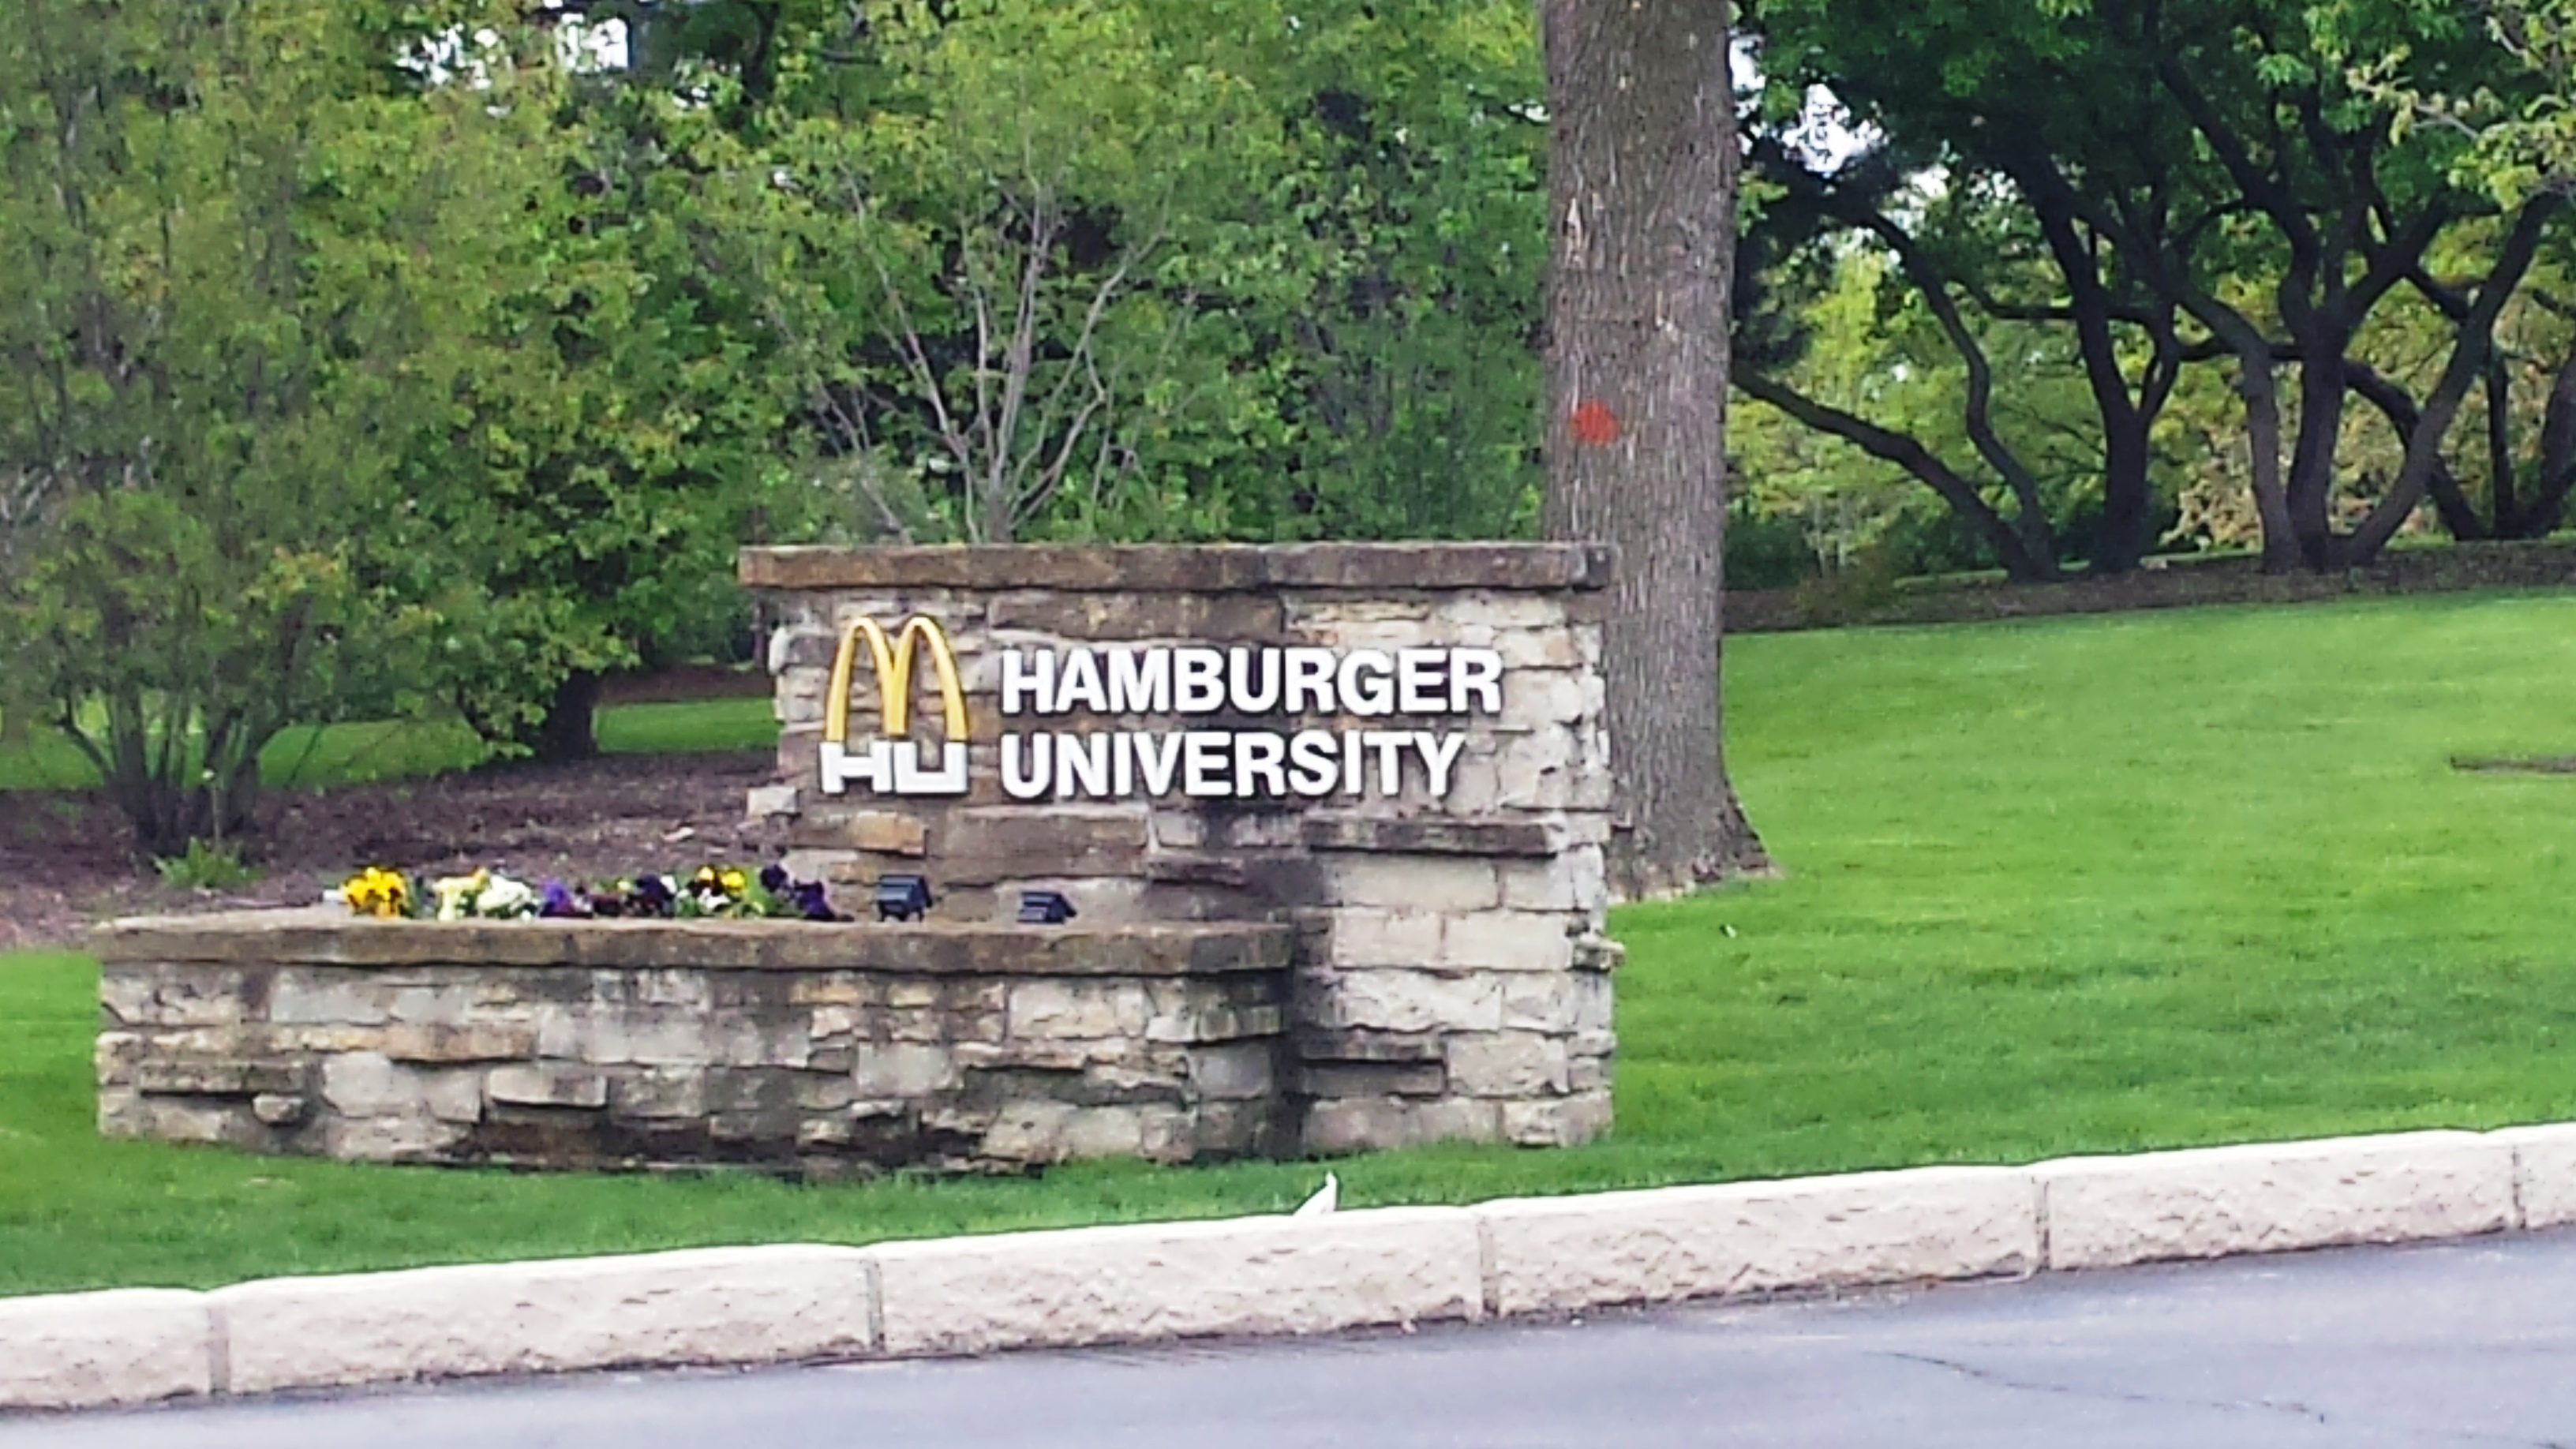 More than 50 teachers unions called on McDonald's Wednesday to stop its McTeacher's Nights. McDonald's corporate office in Oak Brook said it does not manage the controversial McTeacher's Nights fundraisers, but activists believe there is national coordination. (WBEZ/Monica Eng)